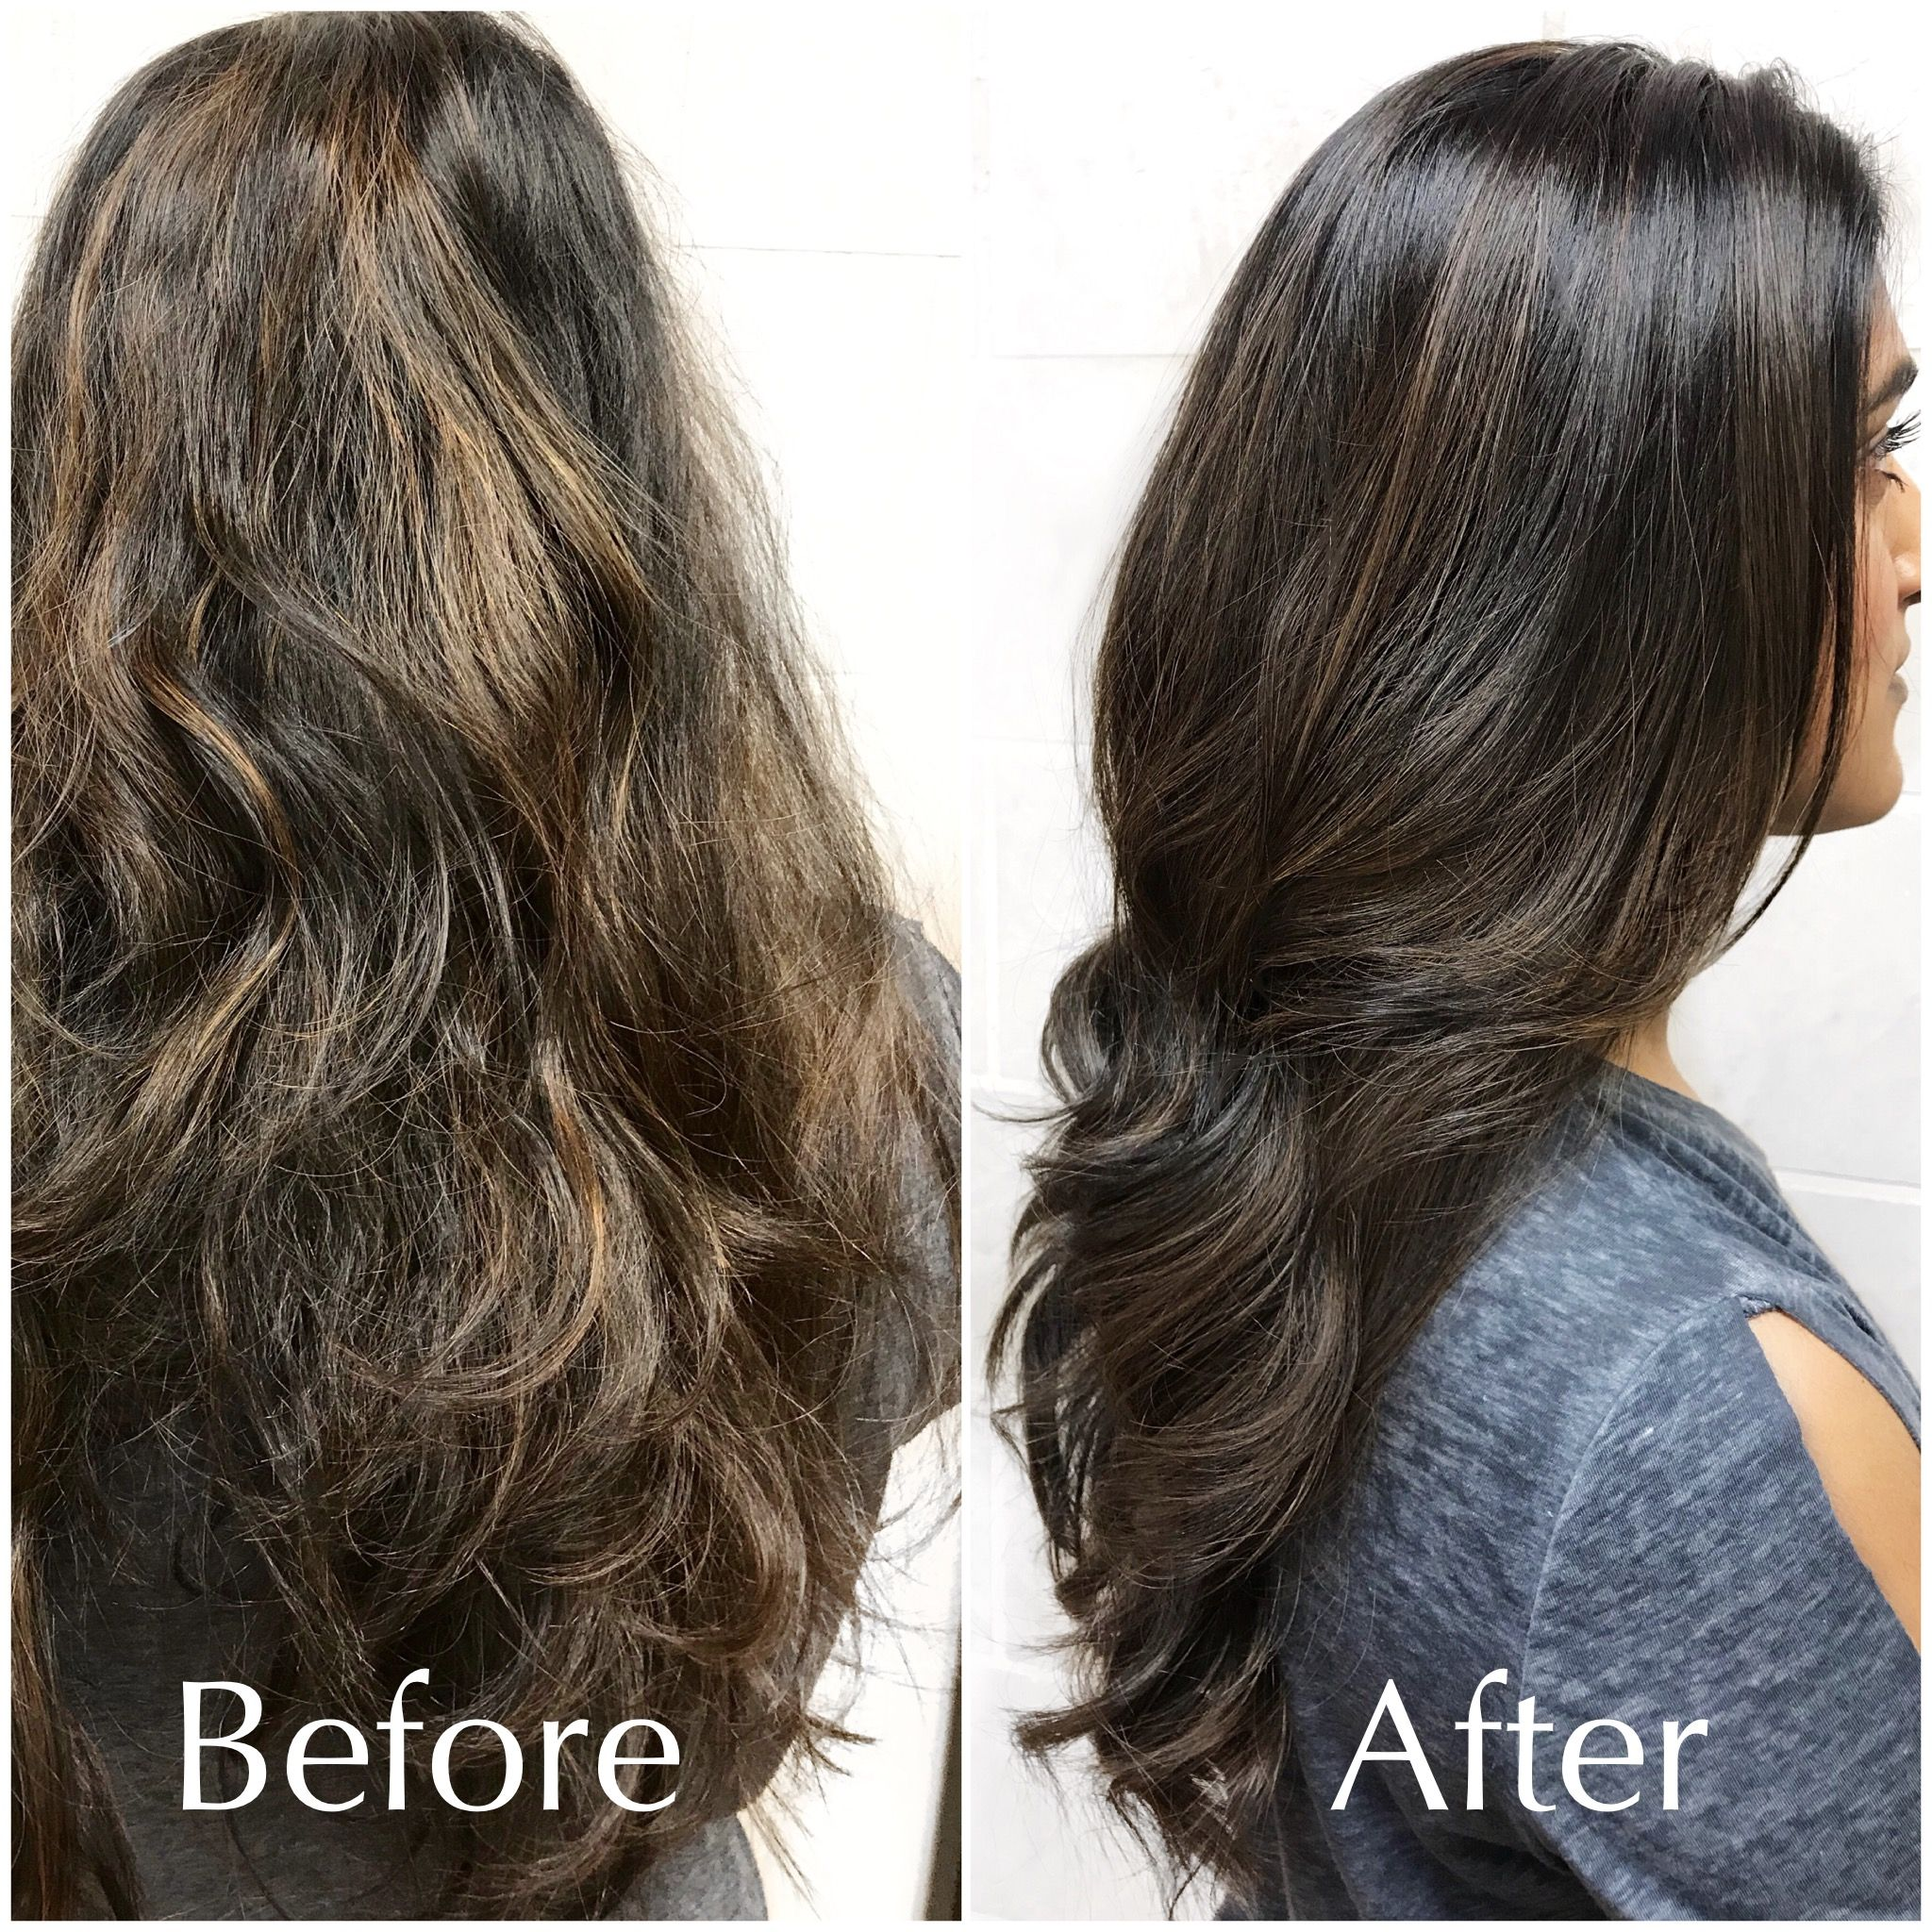 Sarah Dam Chambers Color Correction Specialist At Modern Style Studio Is Known For Turning Disaster Hair N In 2020 Color Correction Long Hair Styles Cool Blonde